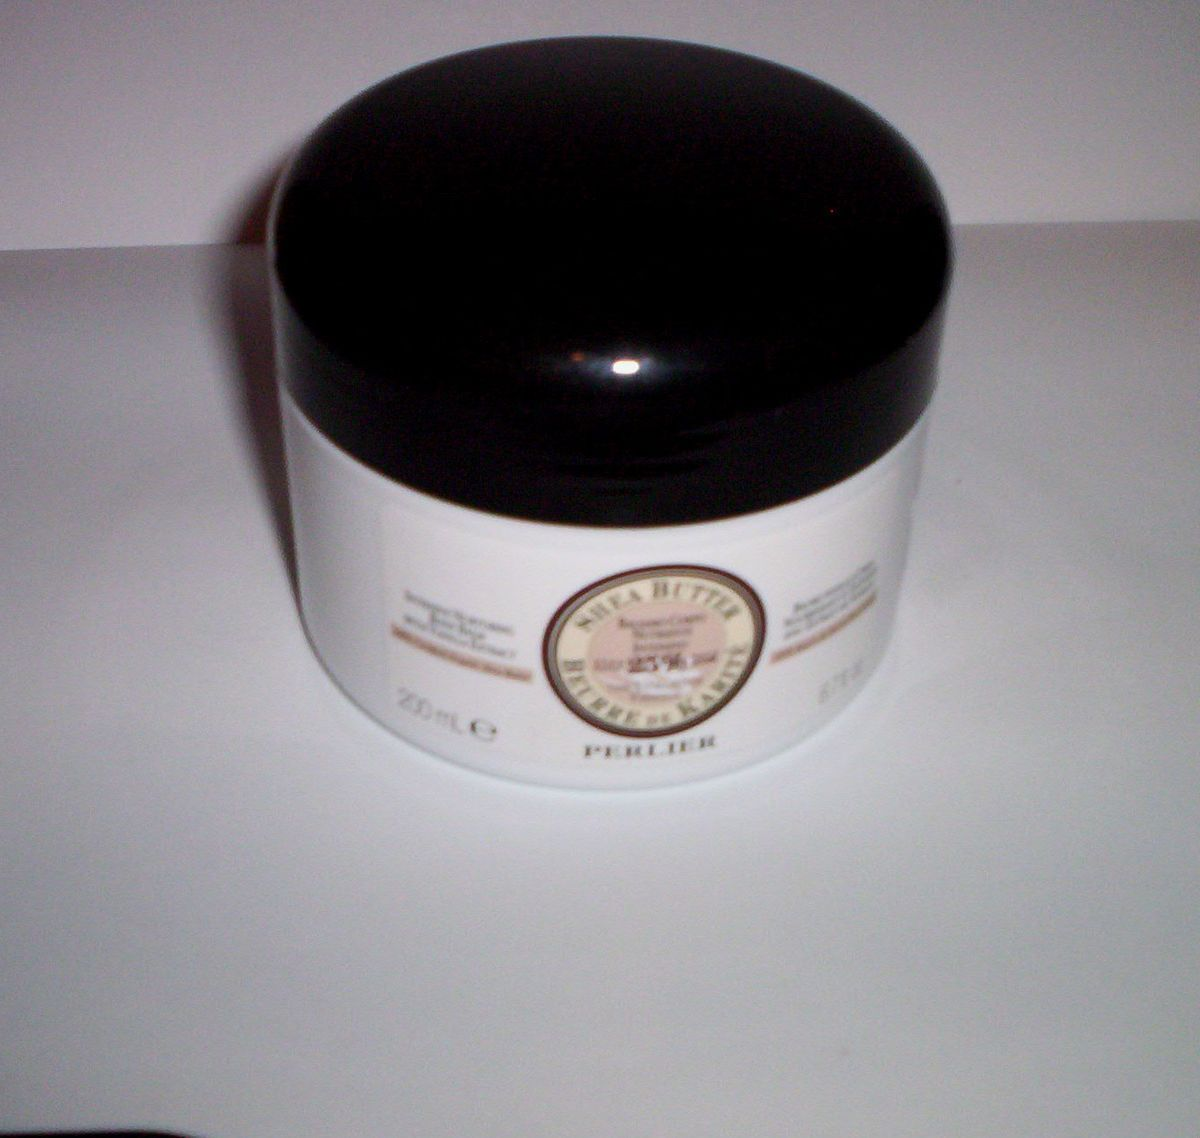 PERLIER 25% SHEA BUTTER BODY BALM CREAM WITH VANILLA EXTRACT 6.7 FL.OZ